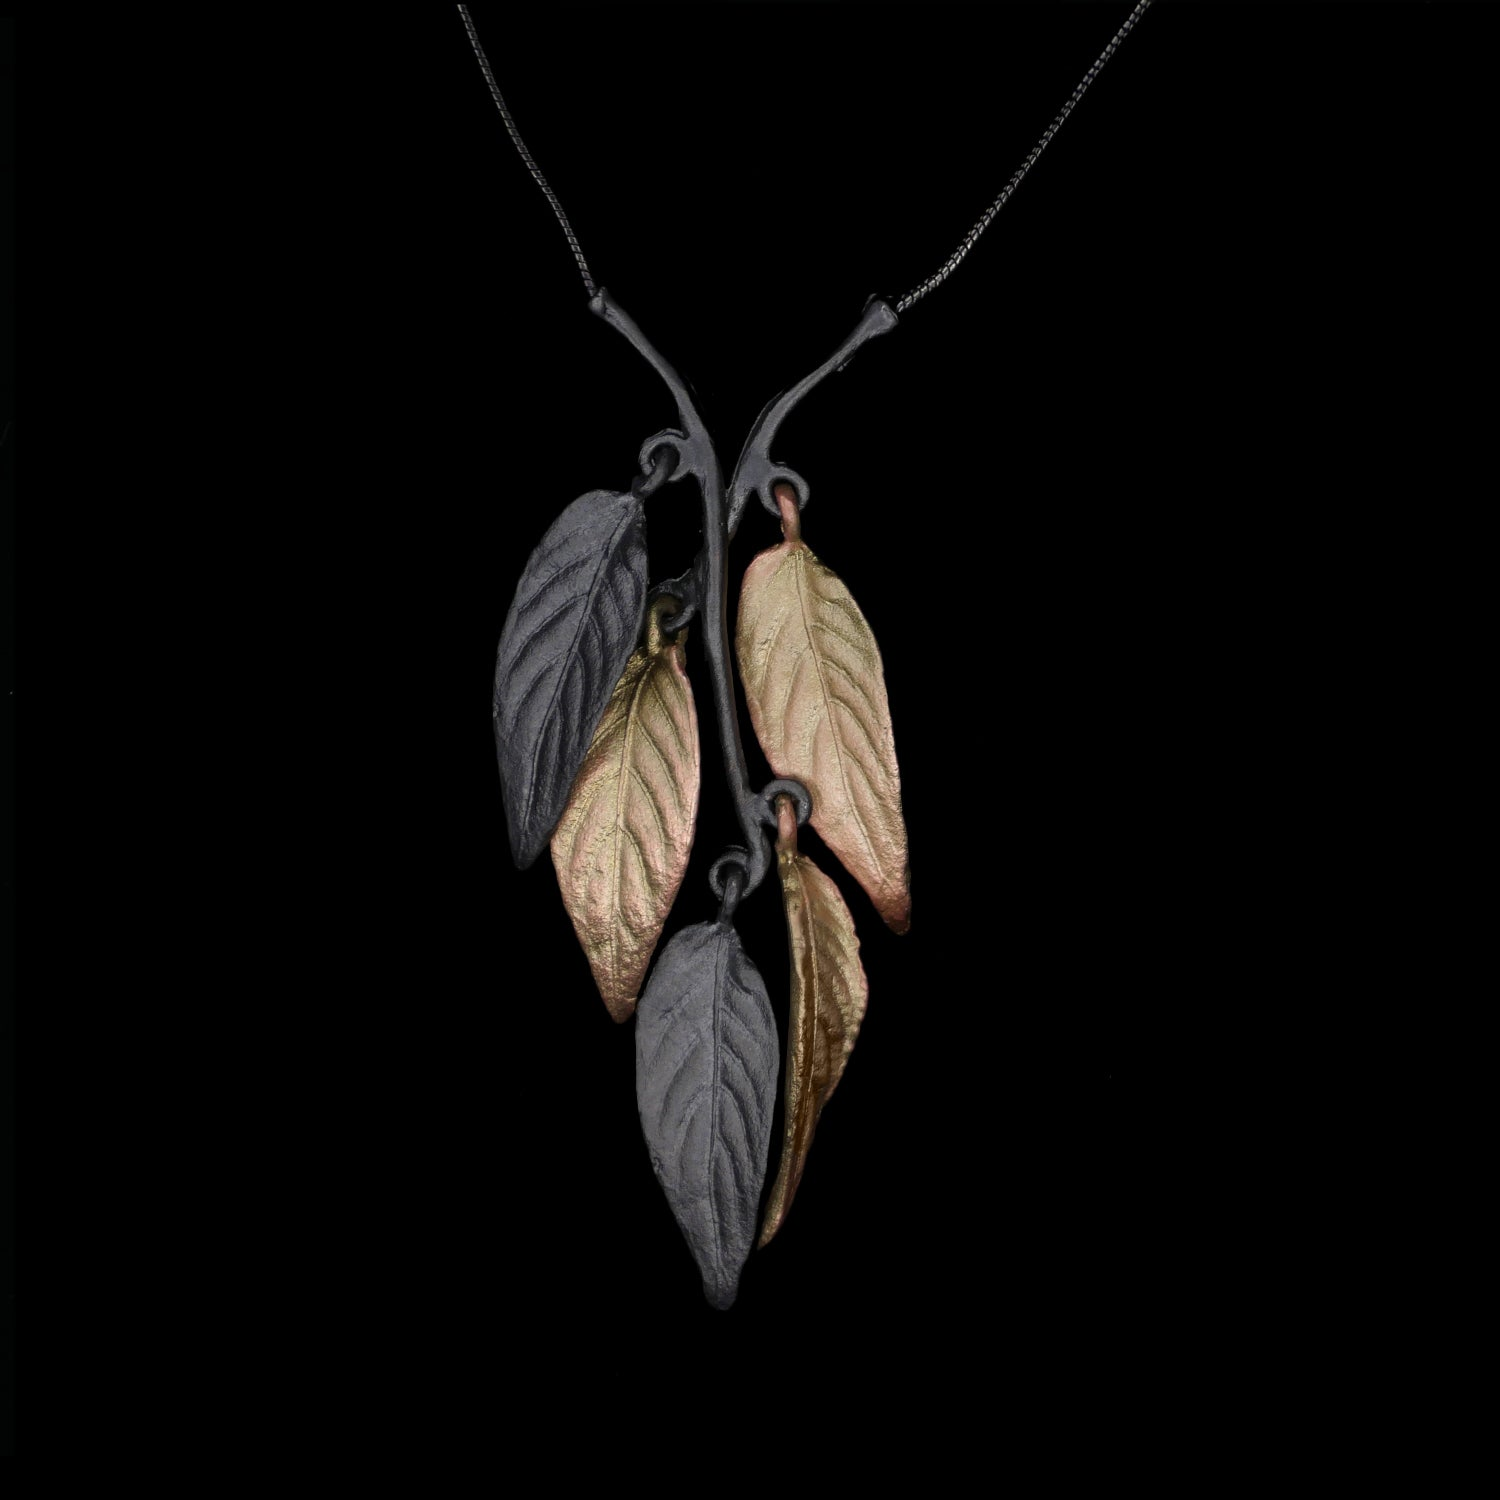 Persian Shield Pendant - Multi Leaf